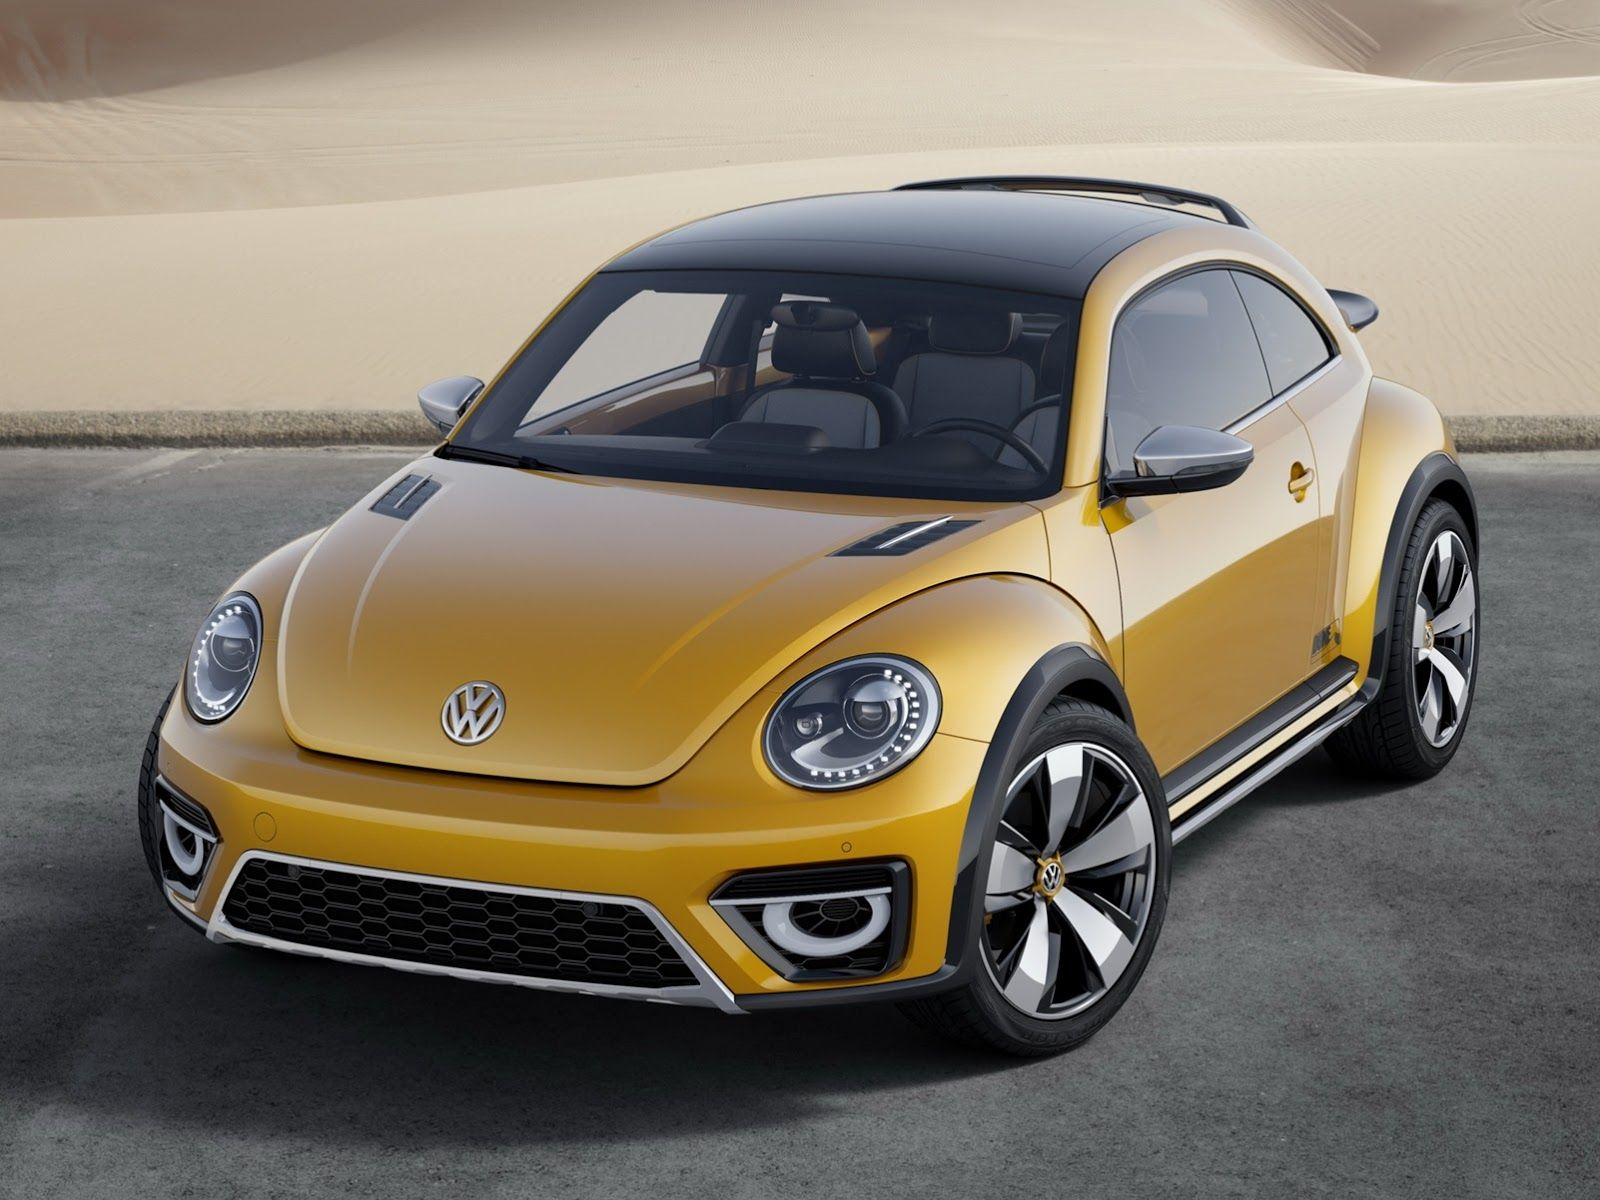 new beetle dune nouveau mod le volkswagen mcar location de voitures tunisie blog news et. Black Bedroom Furniture Sets. Home Design Ideas